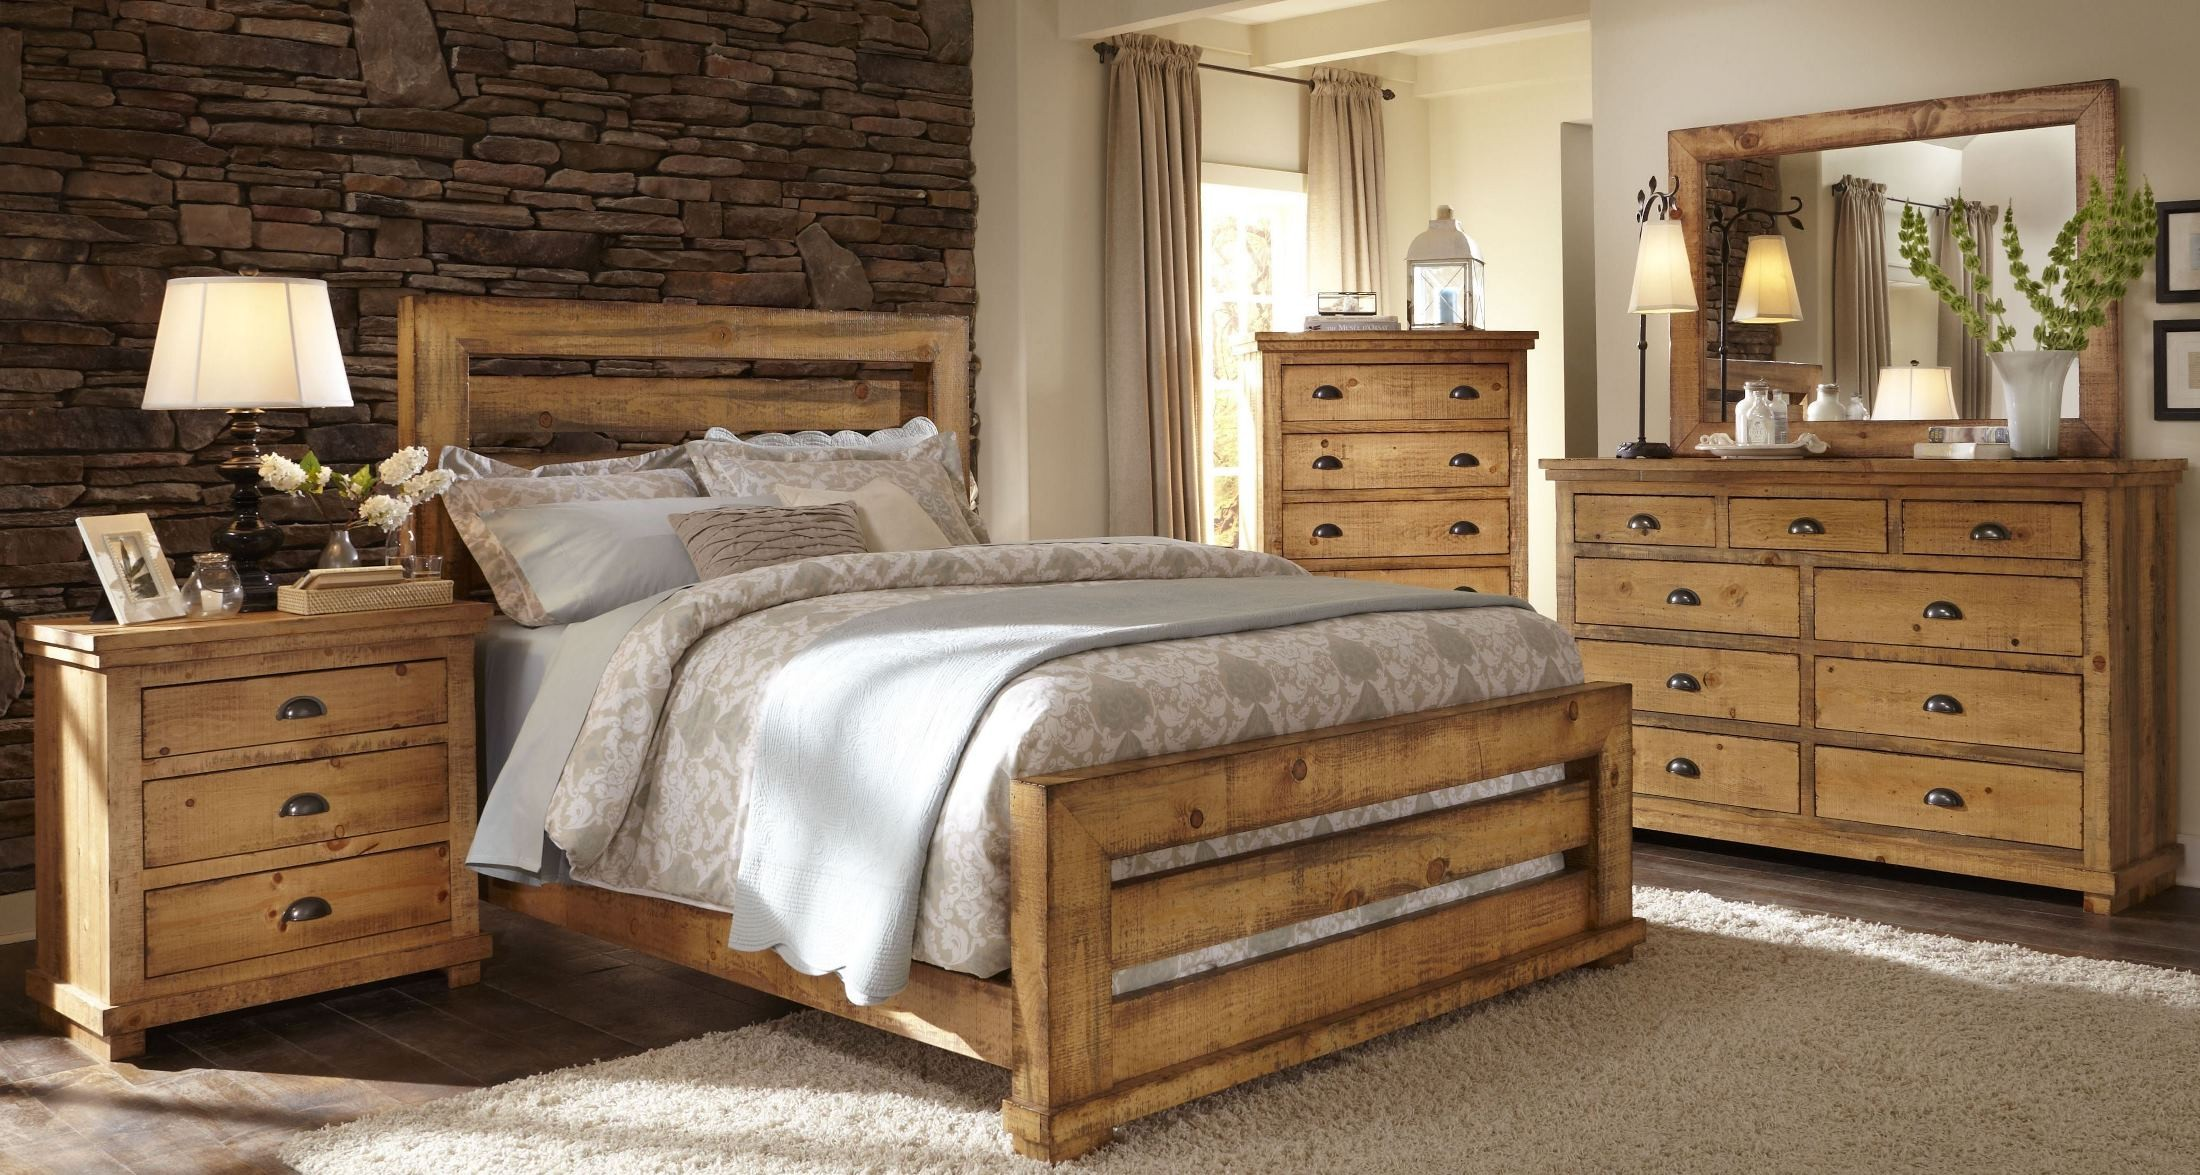 Willow distressed pine slat bedroom set from progressive for Pine bedroom furniture